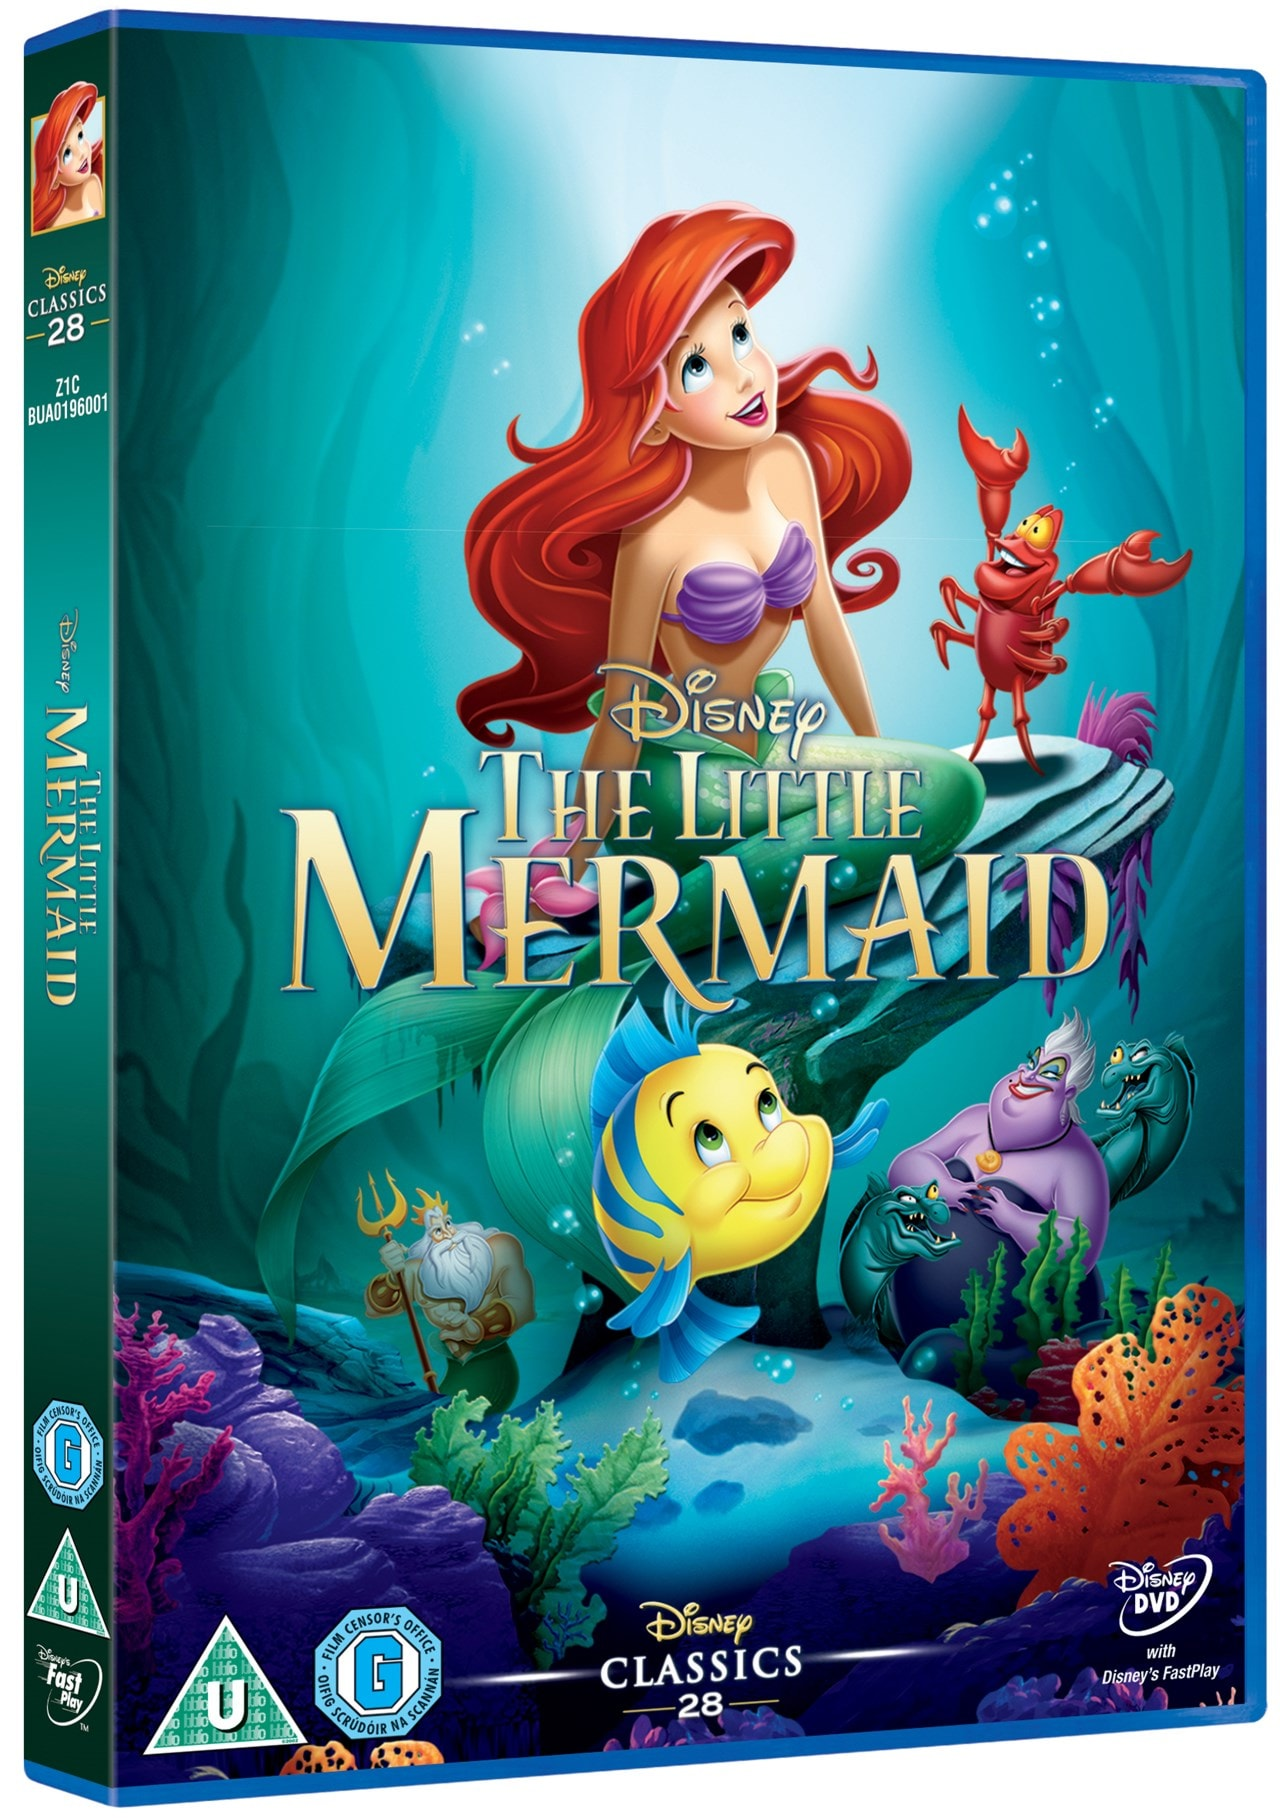 The Little Mermaid (Disney) - 4